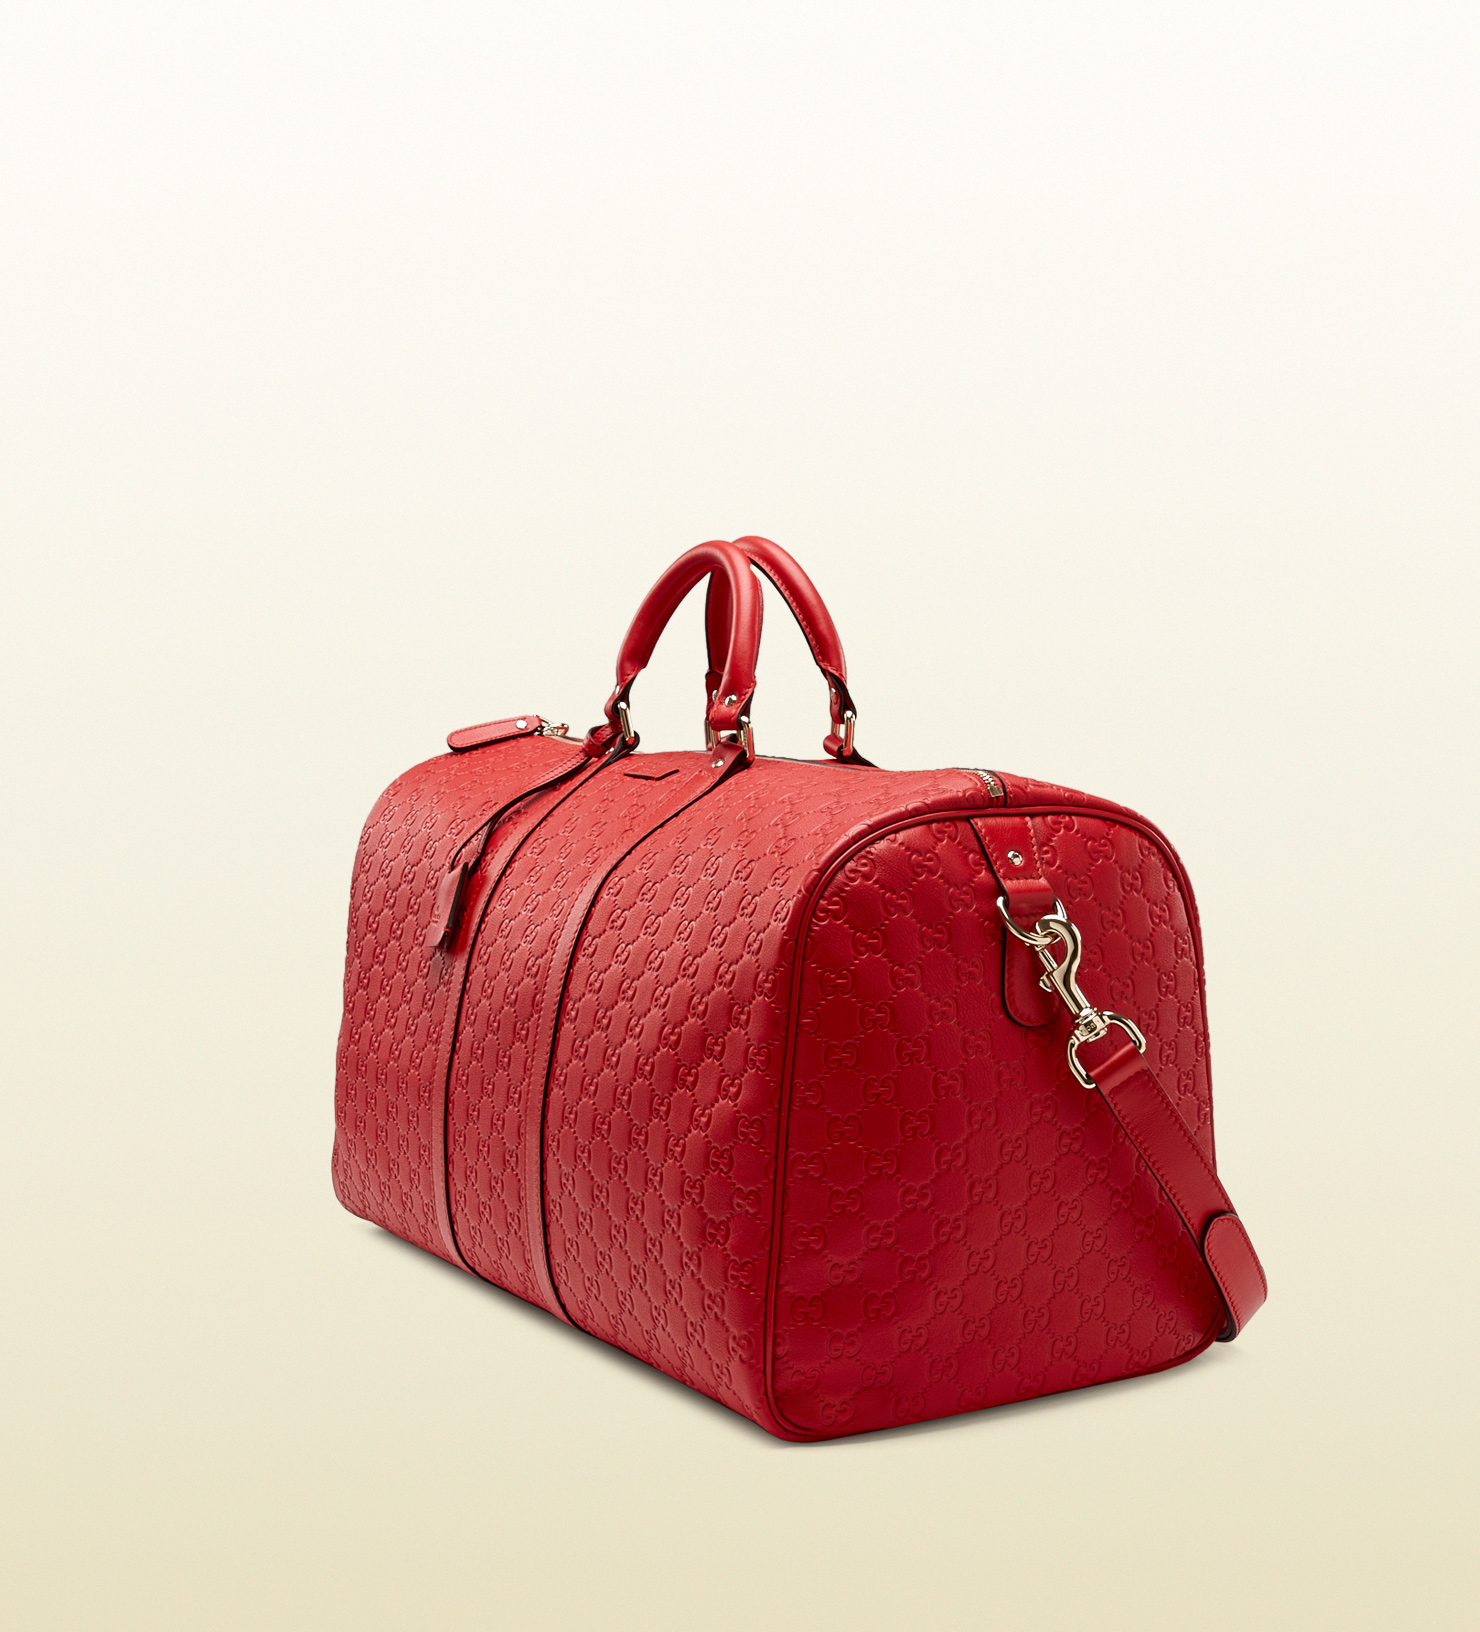 Lyst - Gucci Red Ssima Leather Carry-on Duffel Bag in Red